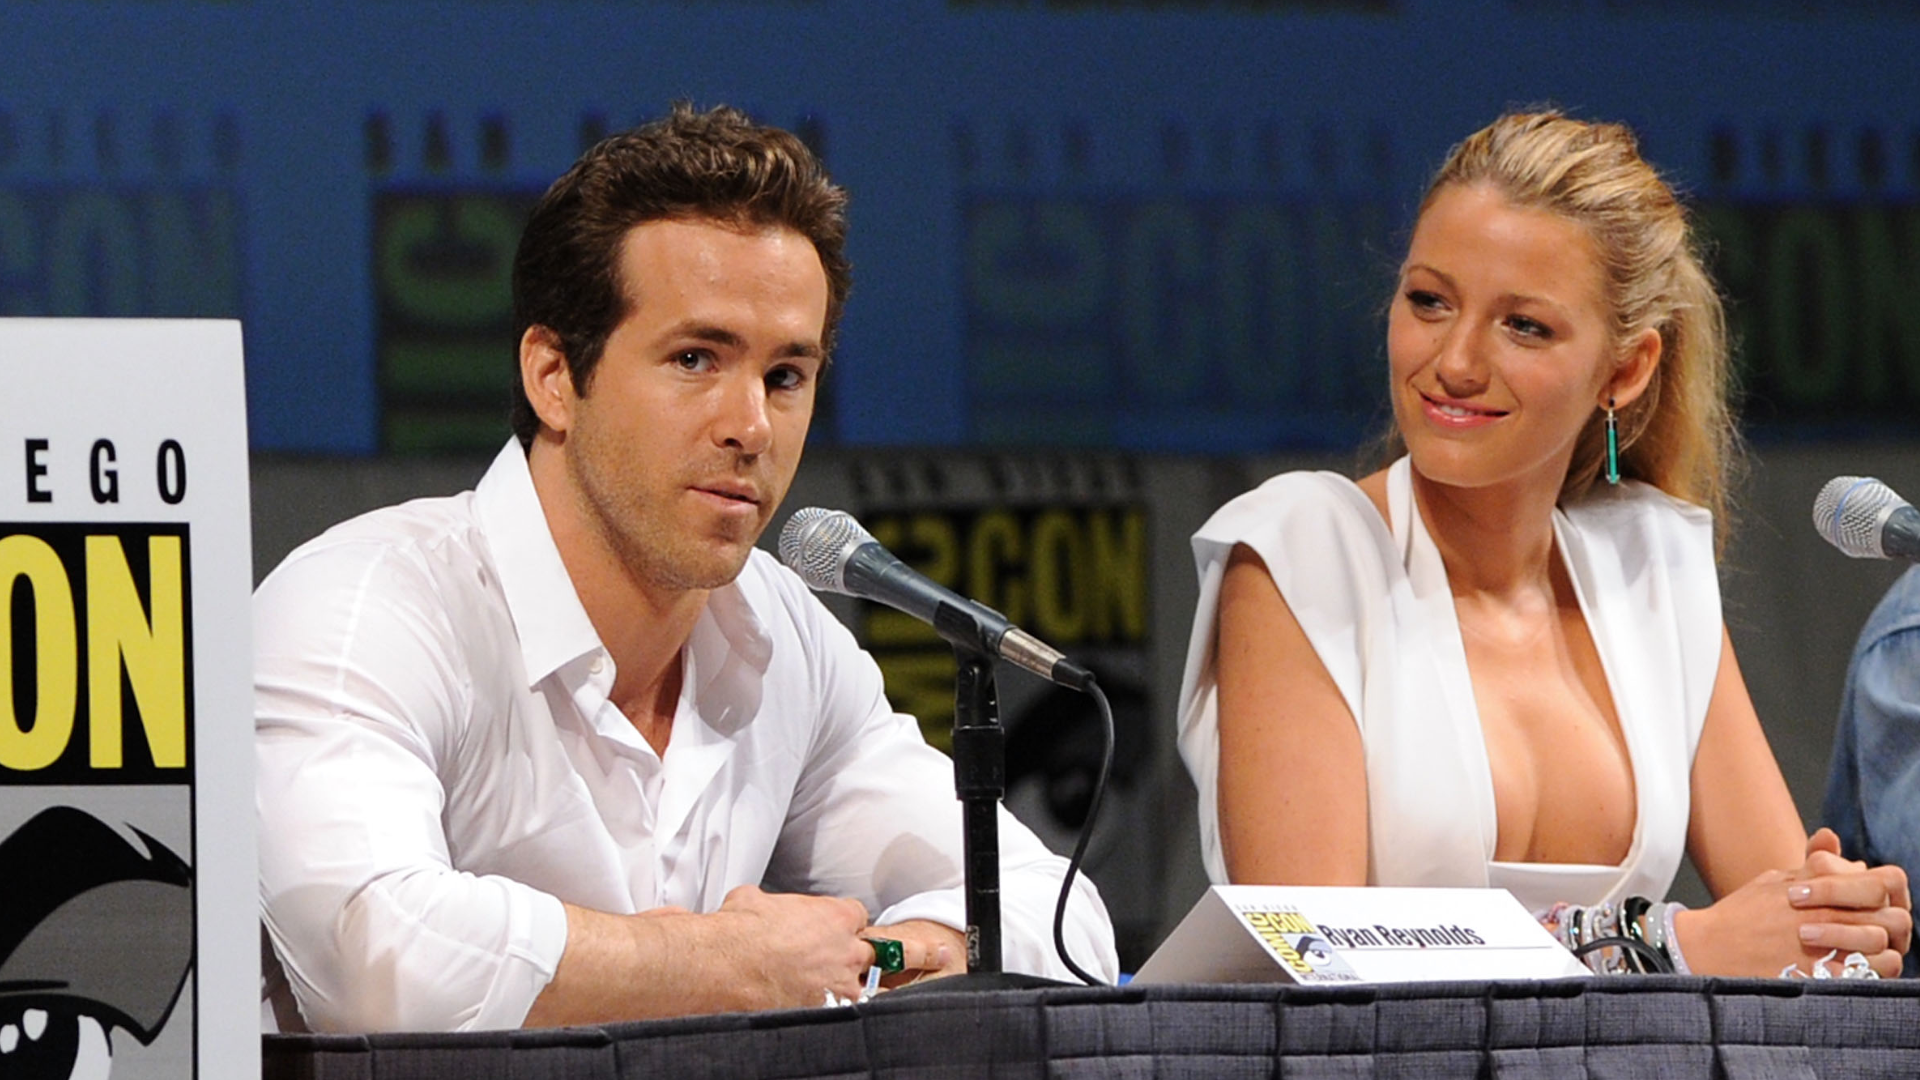 Blake Lively And Ryan Reynolds Just Posted An Adorable Photo Together In Croatia